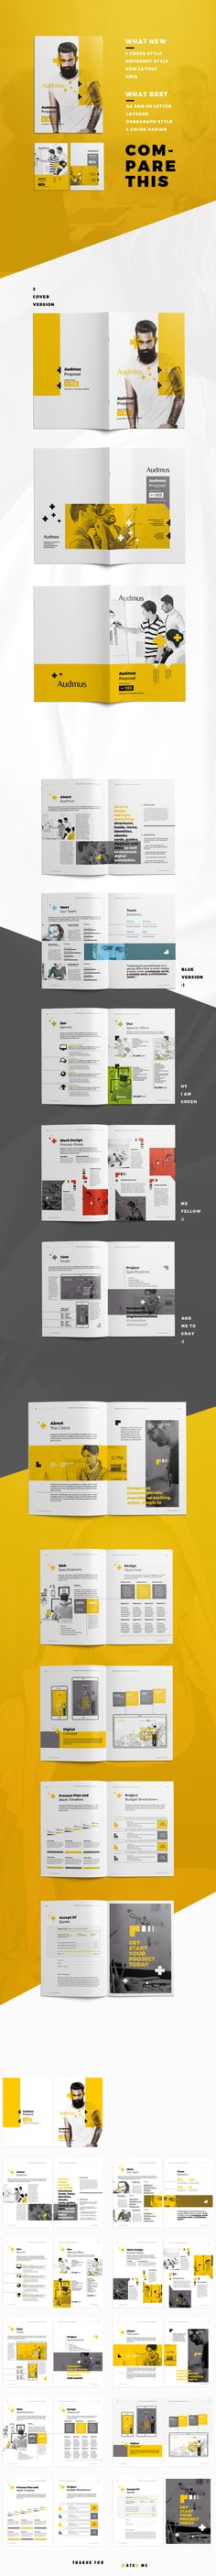 "Check out this @Behance project: ""Proposal"" https://www.behance.net/gallery/34386451/Proposal"